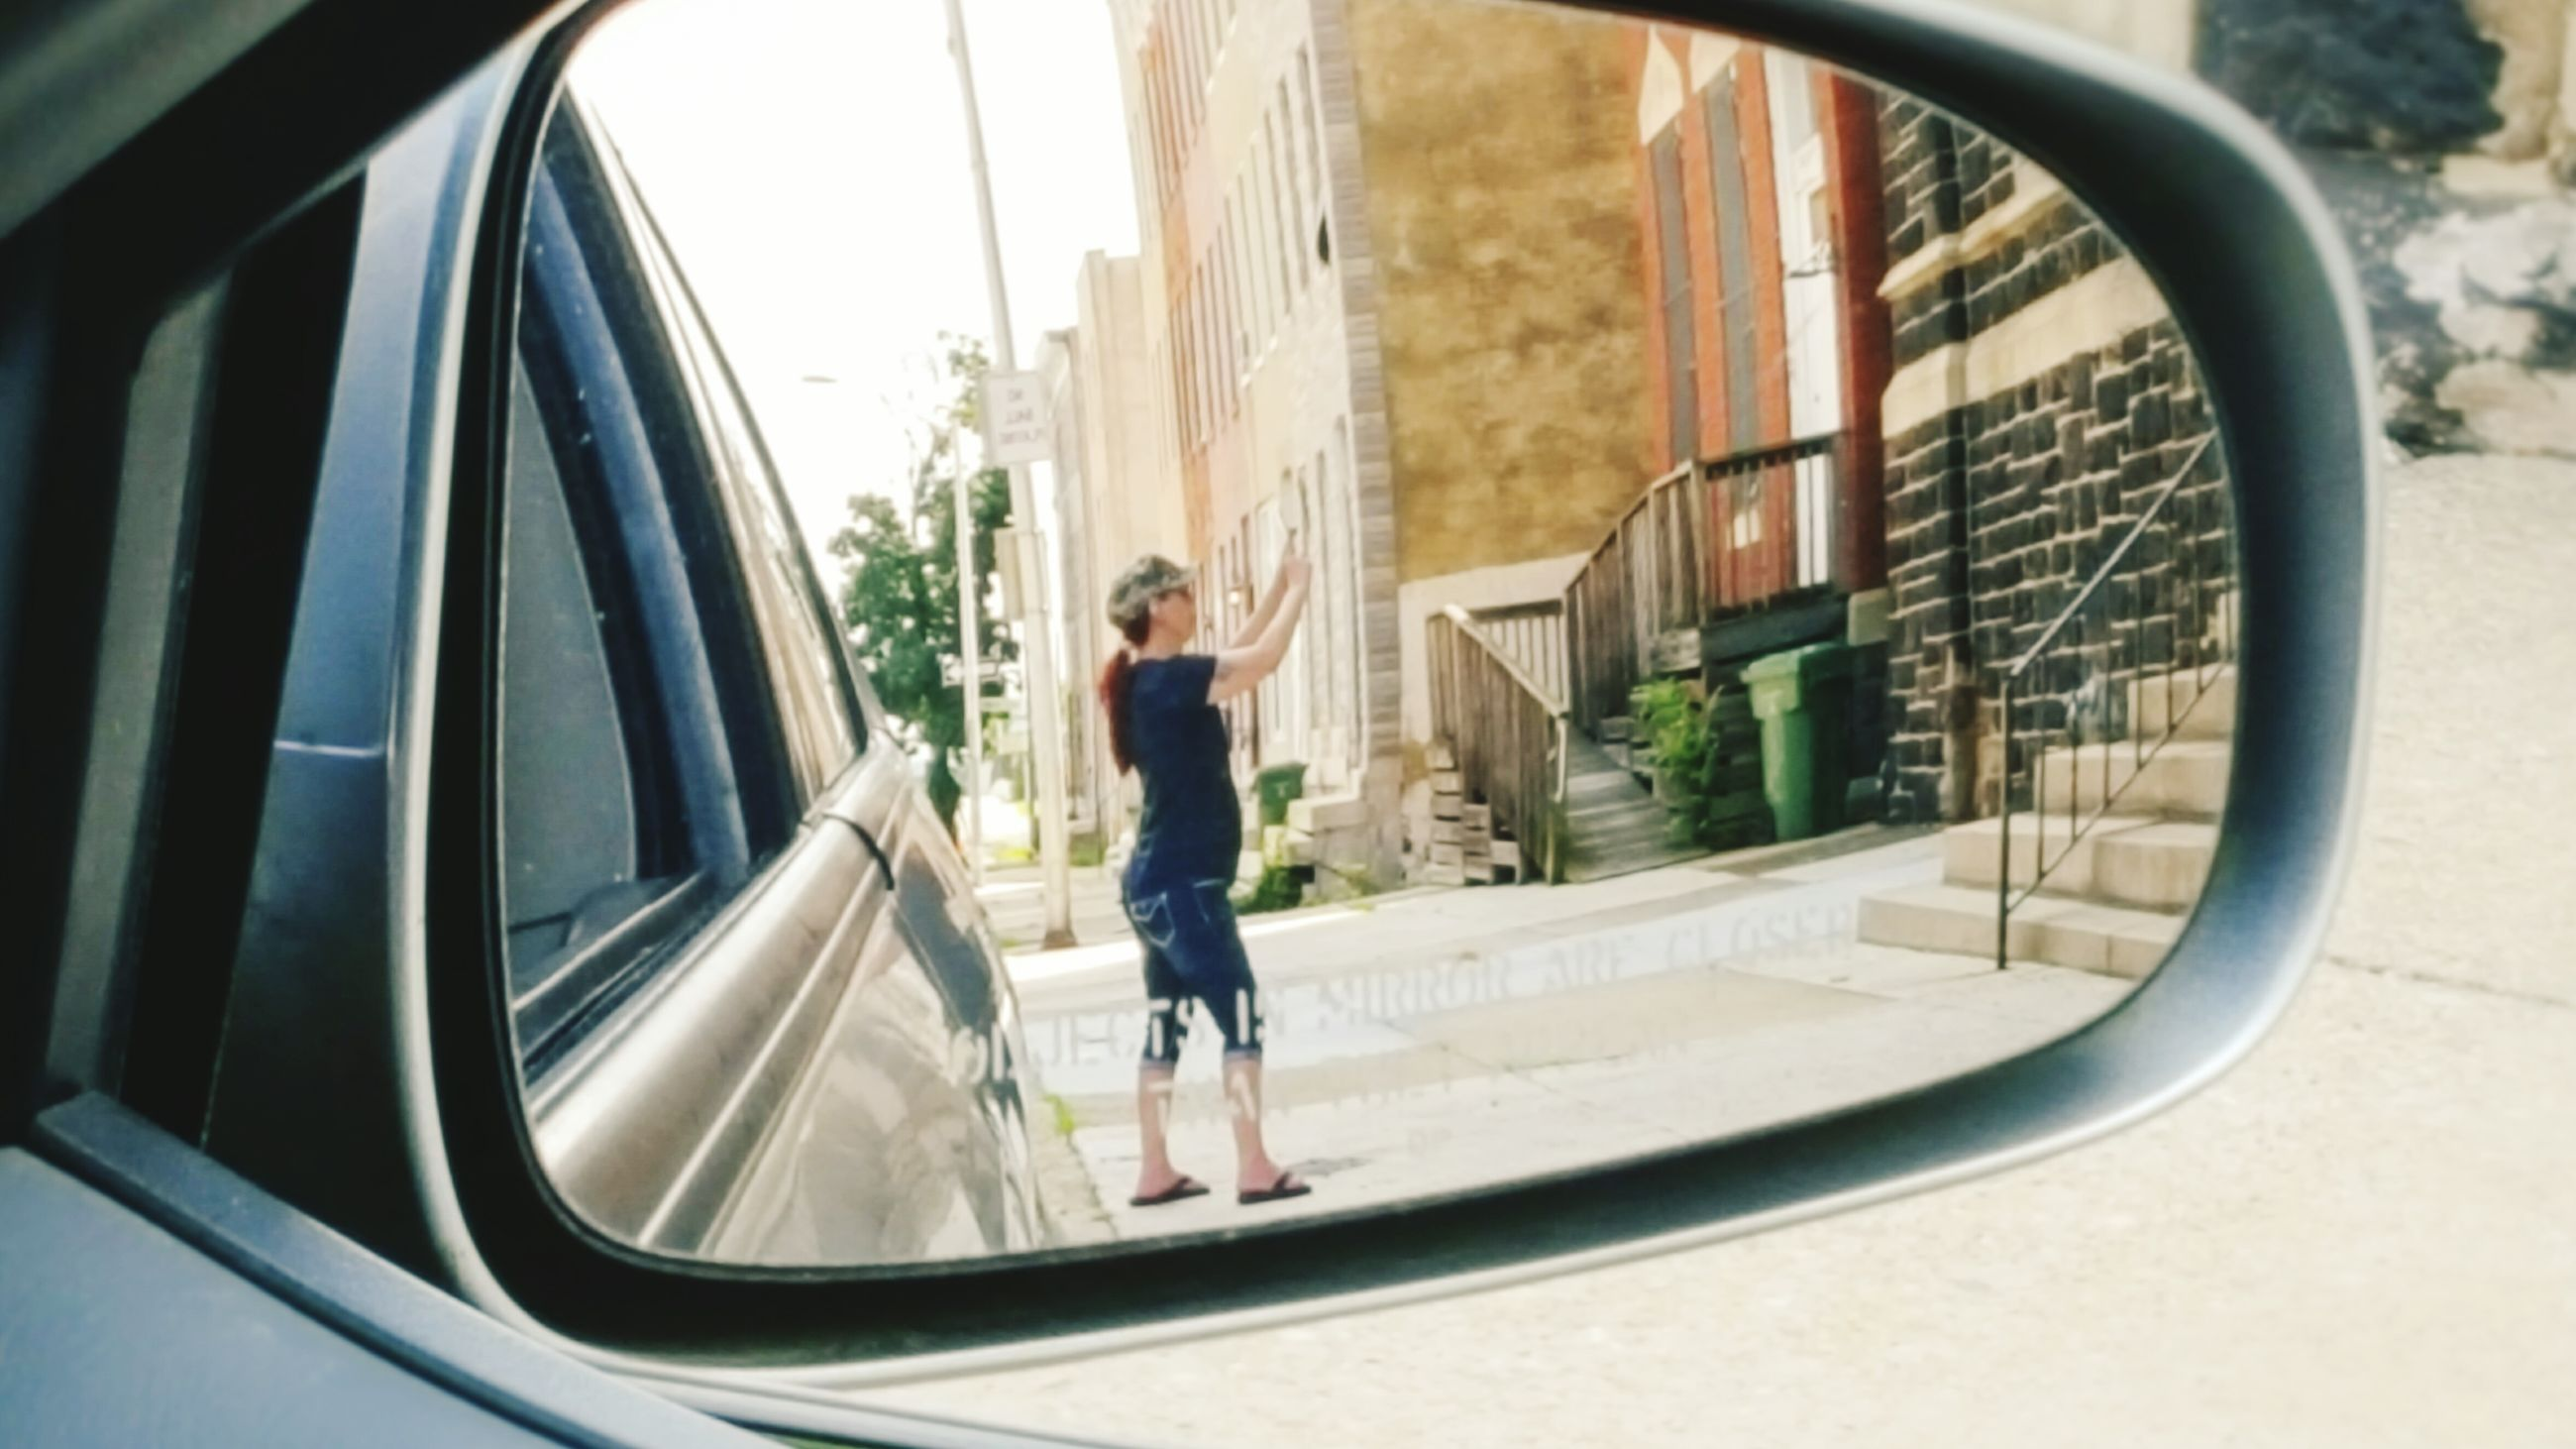 transportation, reflection, side-view mirror, mirror, street, full length, leisure activity, lifestyles, casual clothing, built structure, mode of transport, architecture, building exterior, city life, young adult, day, focus on foreground